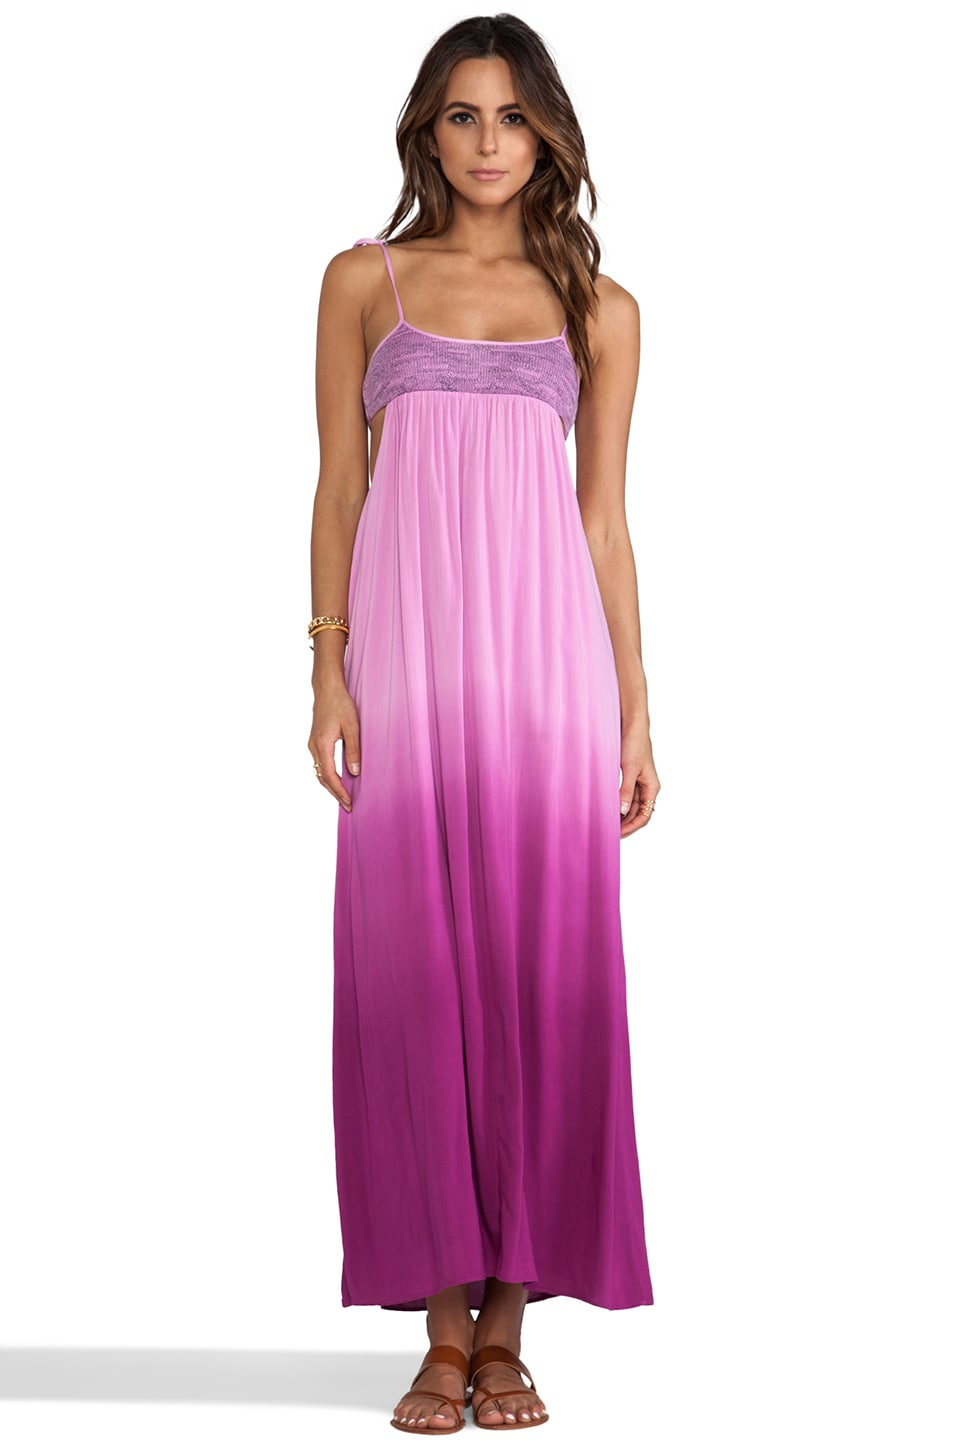 WOODLEIGH Gwen Ombre Maxi Dress in Fuchsia